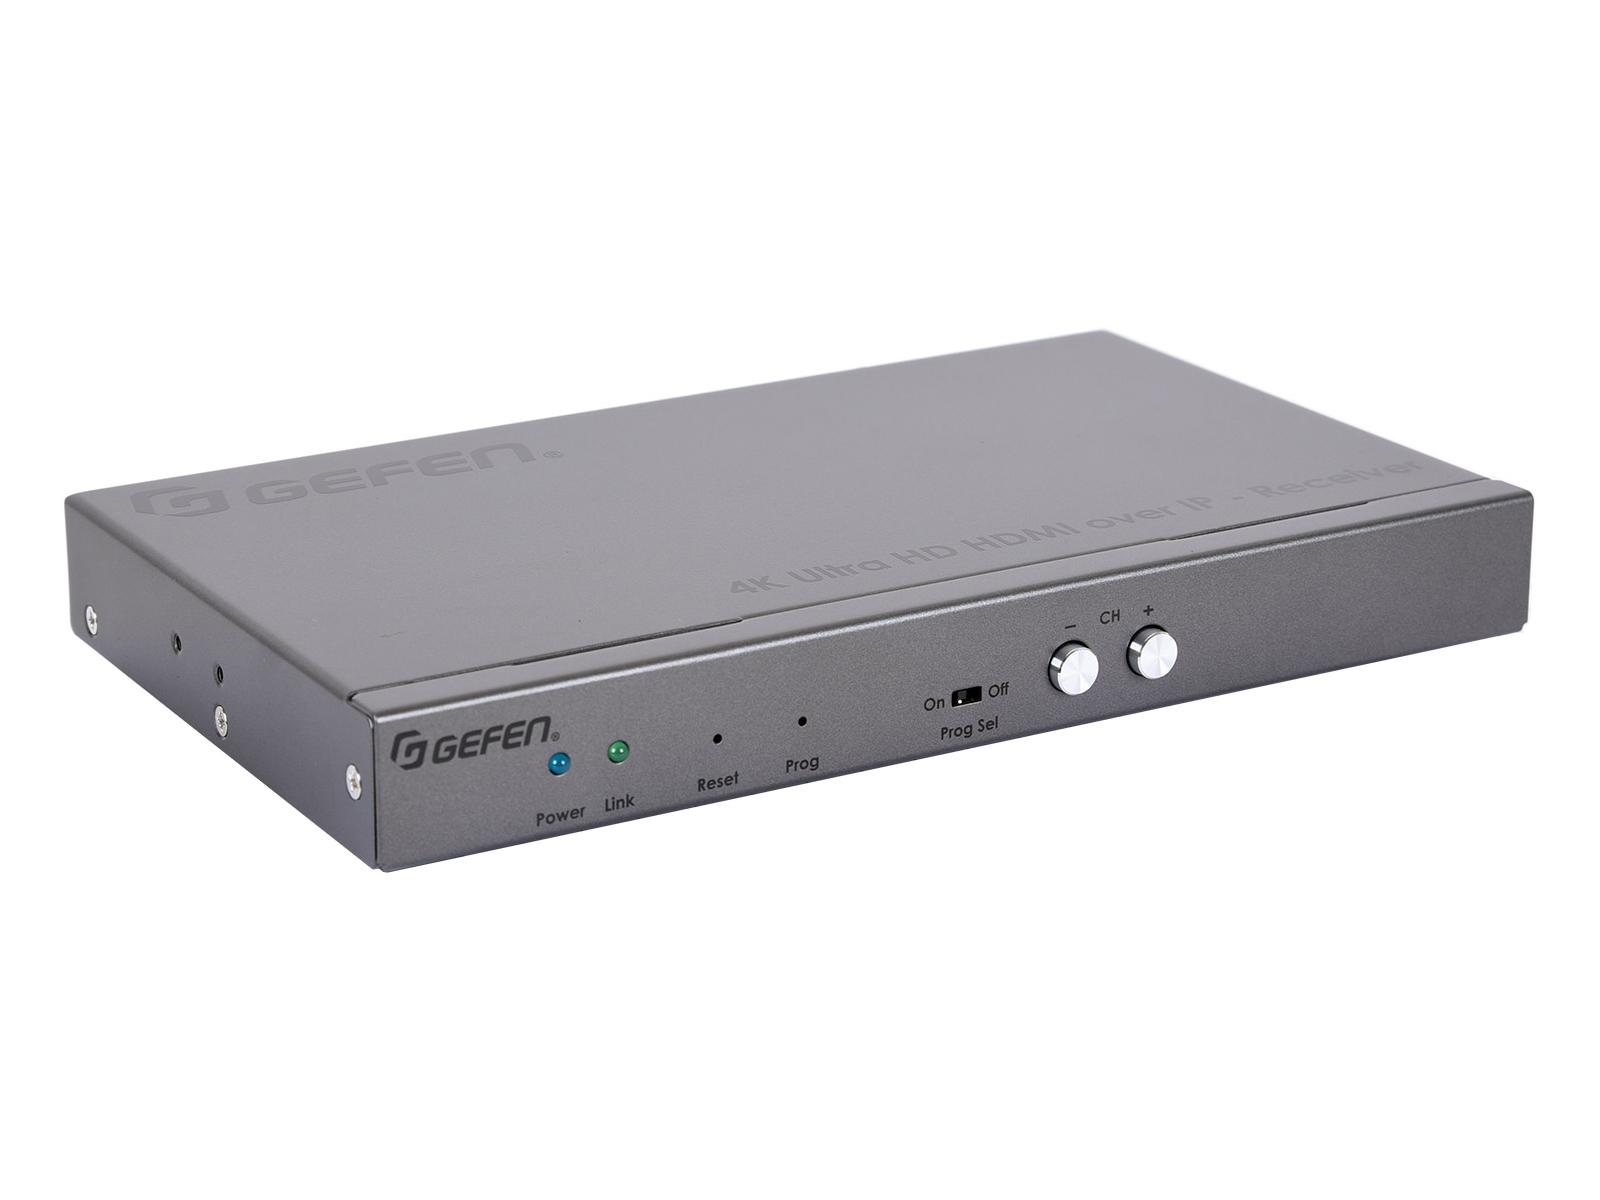 Gefen EXT-UHD-LANS-RX 4K Ultra HD HDMI over IP Extender (Receiver)